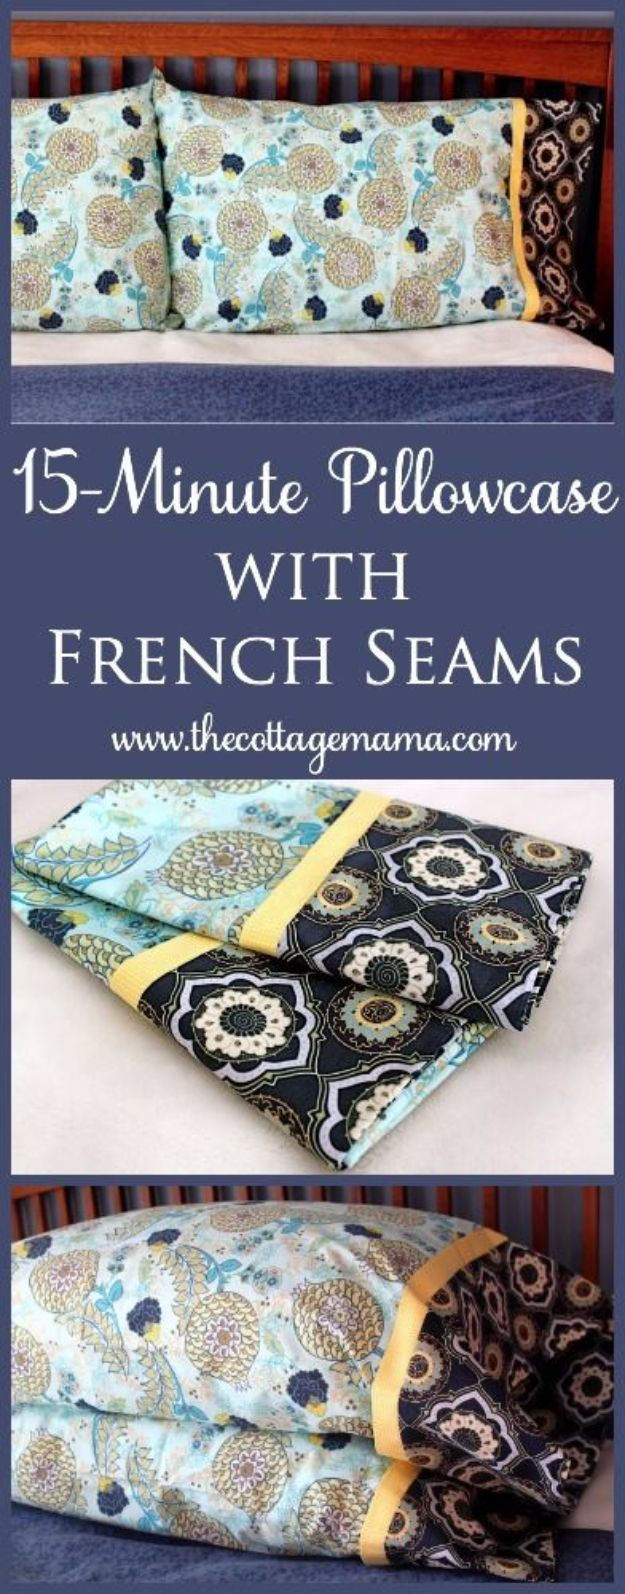 Cheap white pillowcases for crafts - Best 20 Pillowcase Pattern Ideas On Pinterest Sewing Pillow Cases Pillow Cases And Diy Pillow Cases